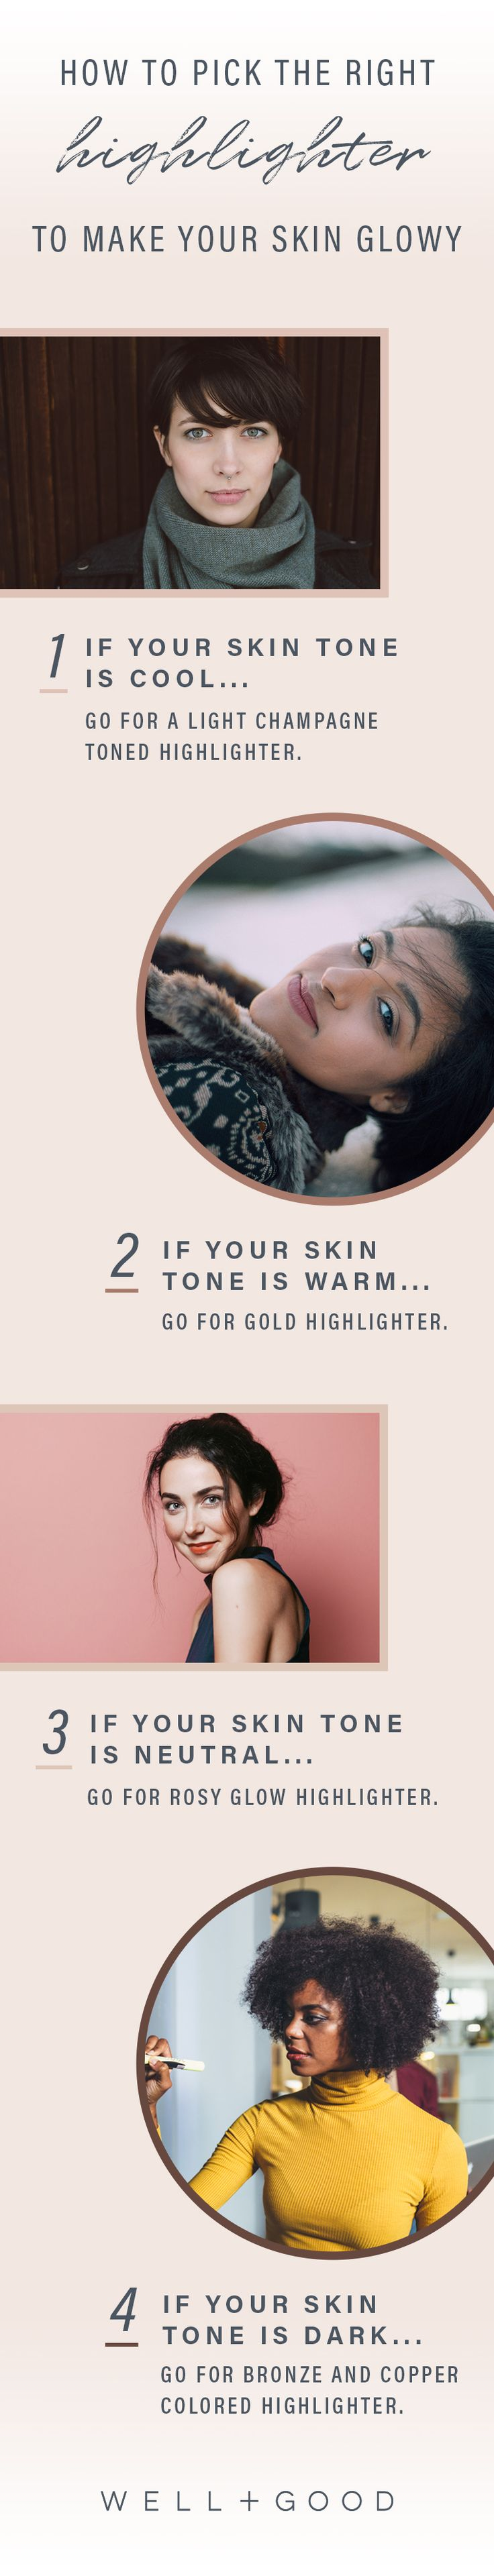 Makeup highlighters for glowy skin